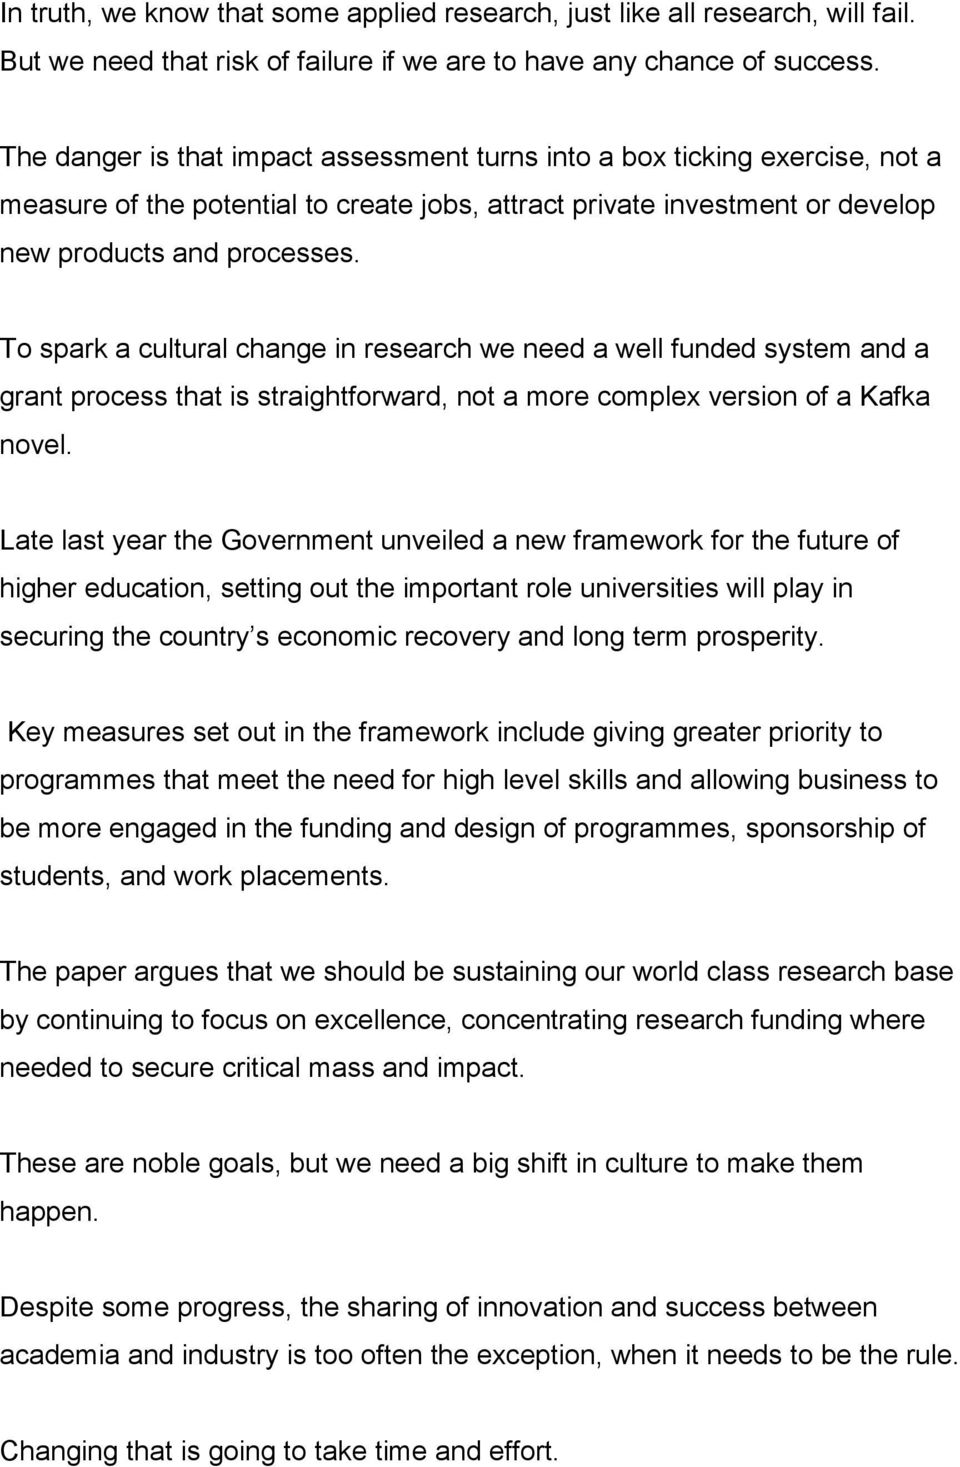 To spark a cultural change in research we need a well funded system and a grant process that is straightforward, not a more complex version of a Kafka novel.